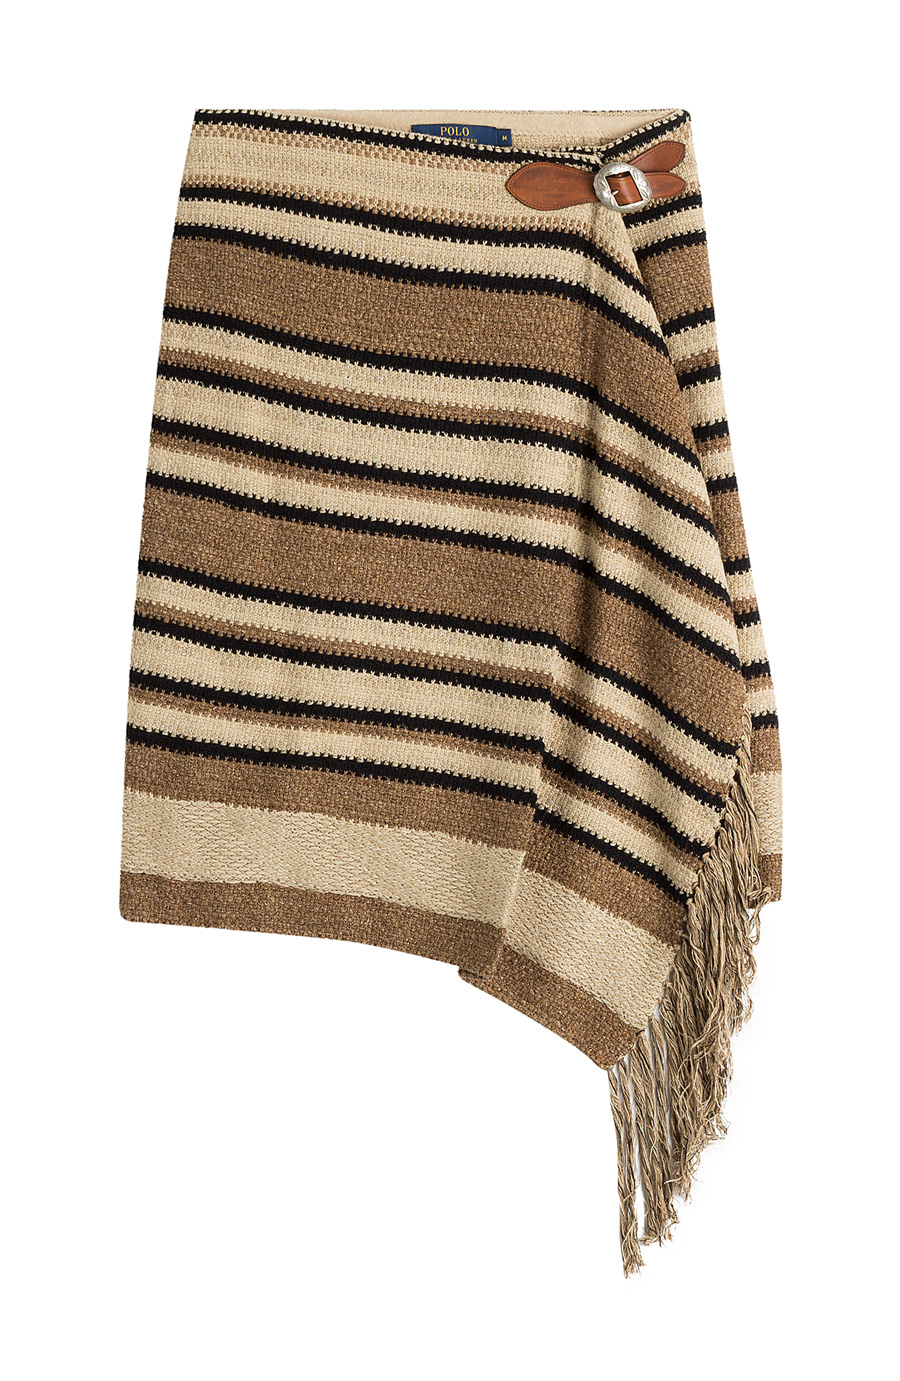 POLO RALPH LAUREN FRINGE STRIPED SKIRT